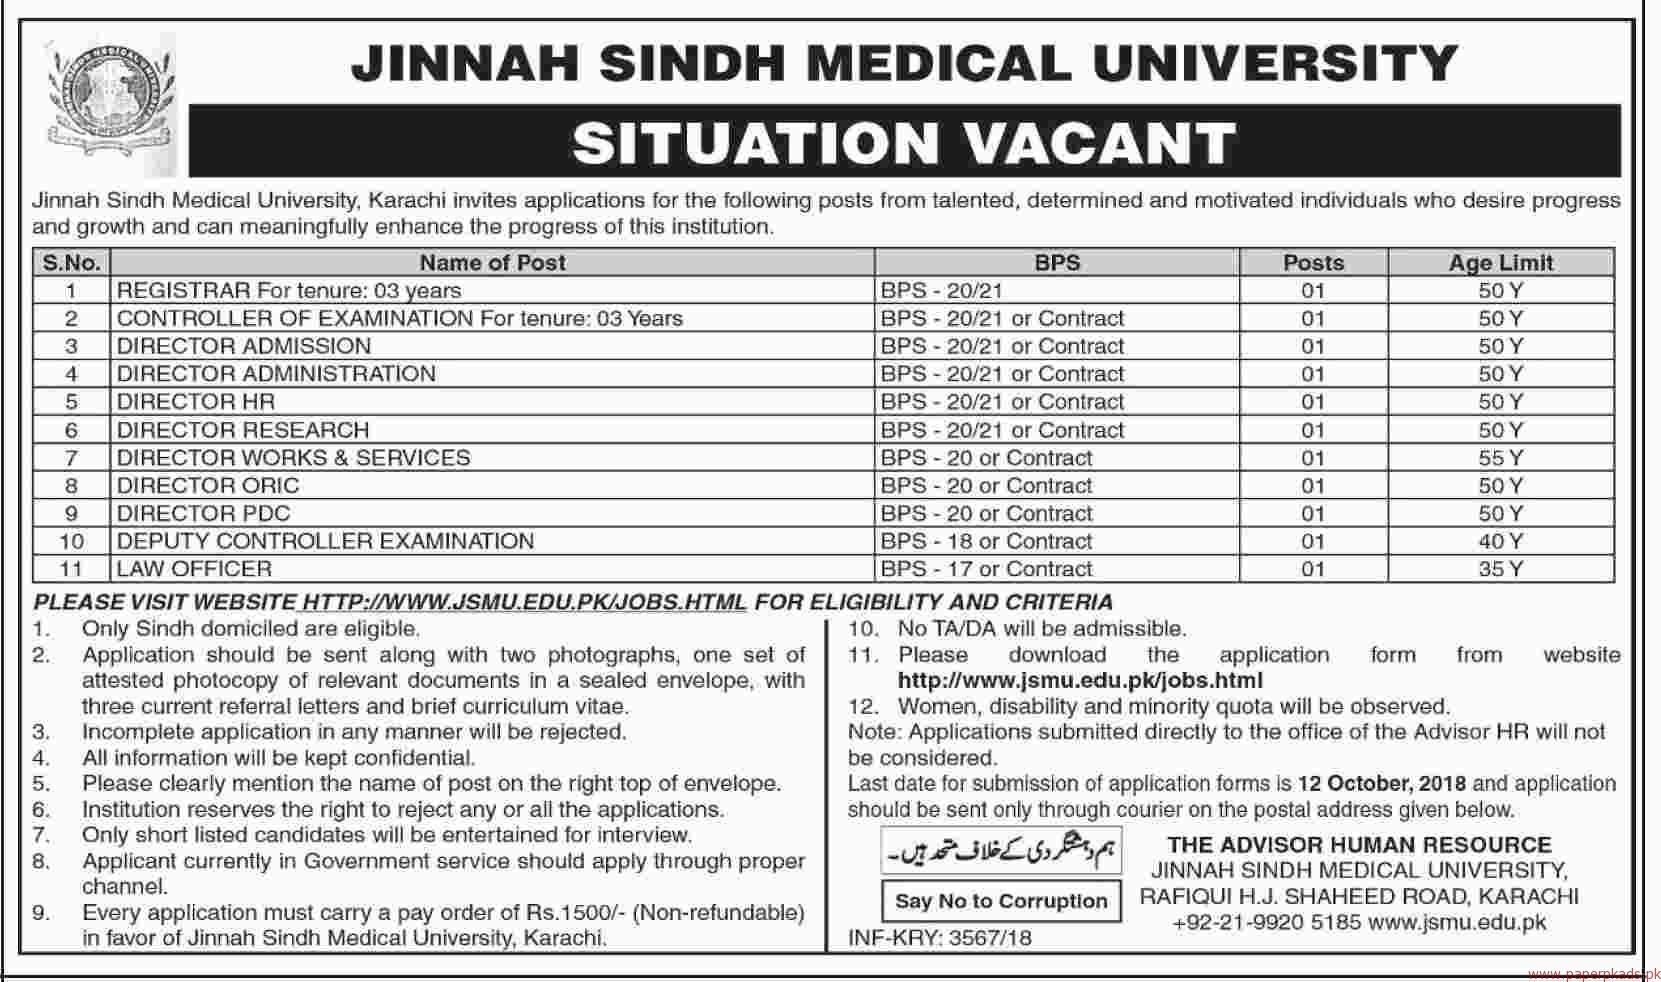 Jinnah Sindh Medical University Jobs 2018 Latest